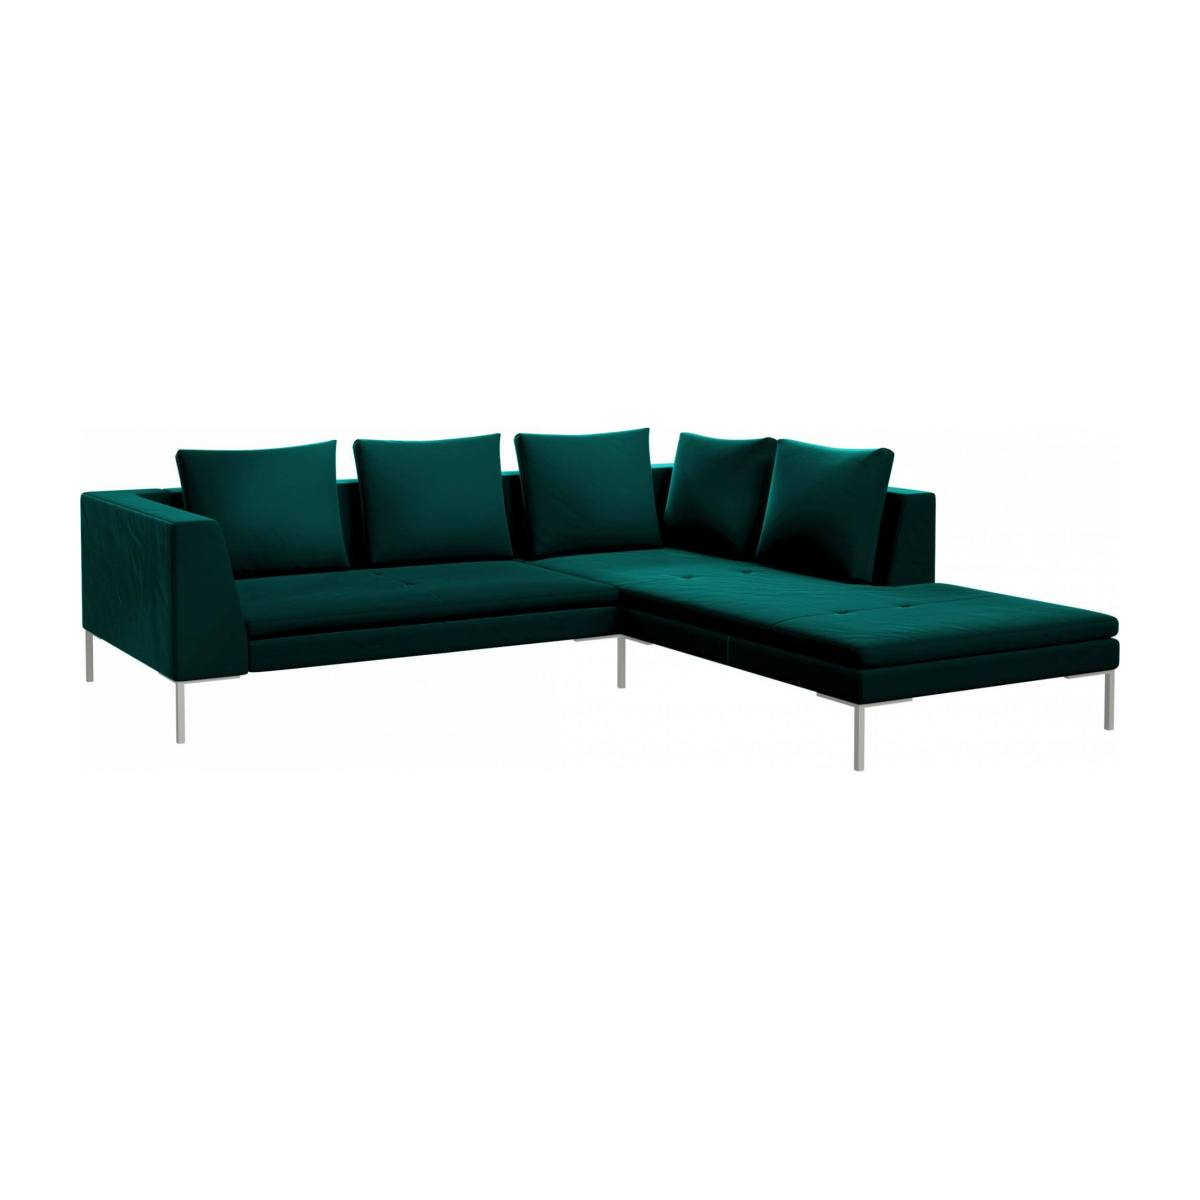 2 seater sofa with chaise longue on the right in Super Velvet fabric, petrol blue  n°2